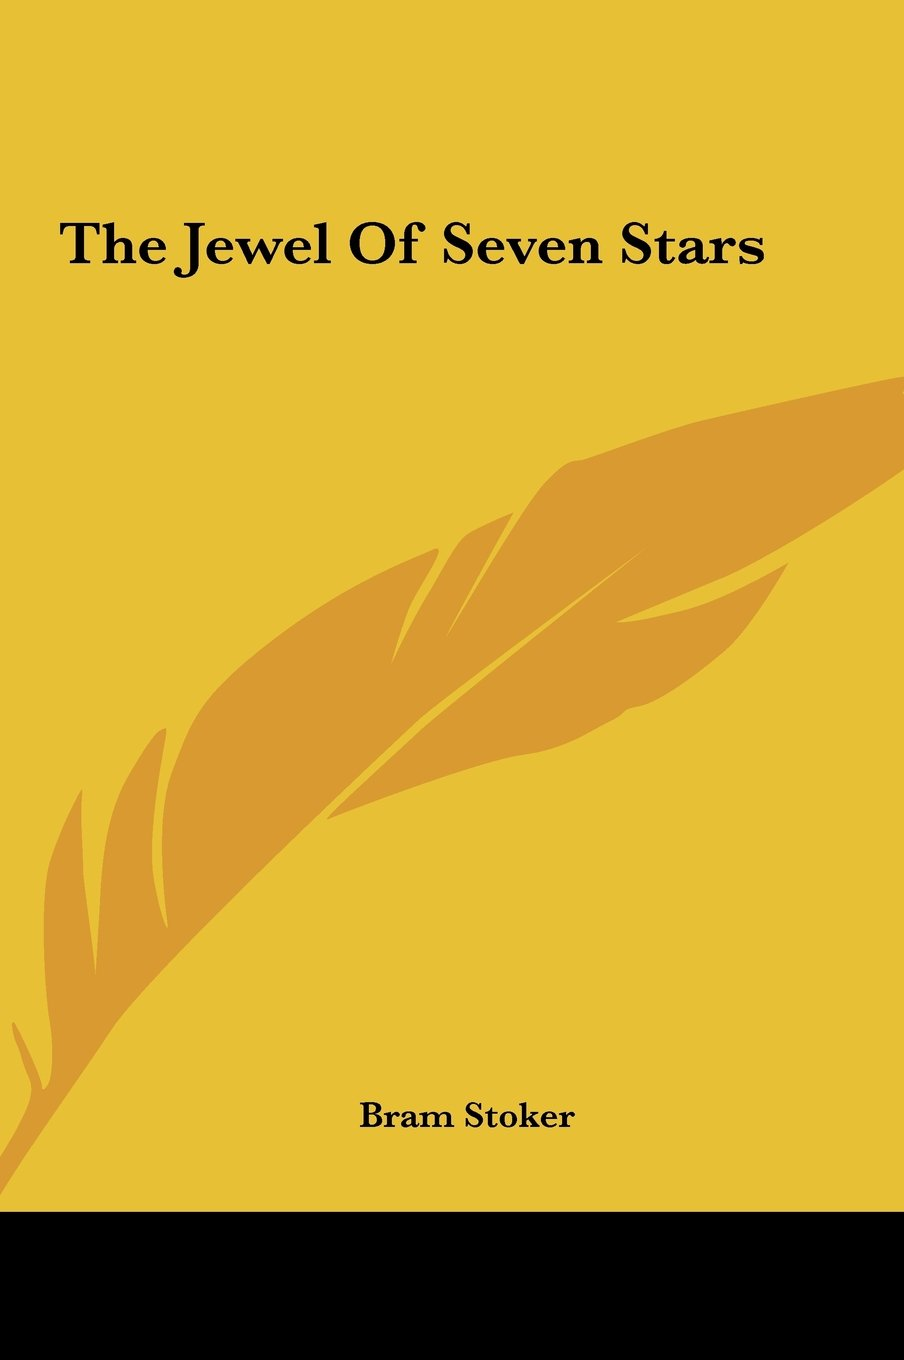 Read Online The Jewel of Seven Stars the Jewel of Seven Stars pdf